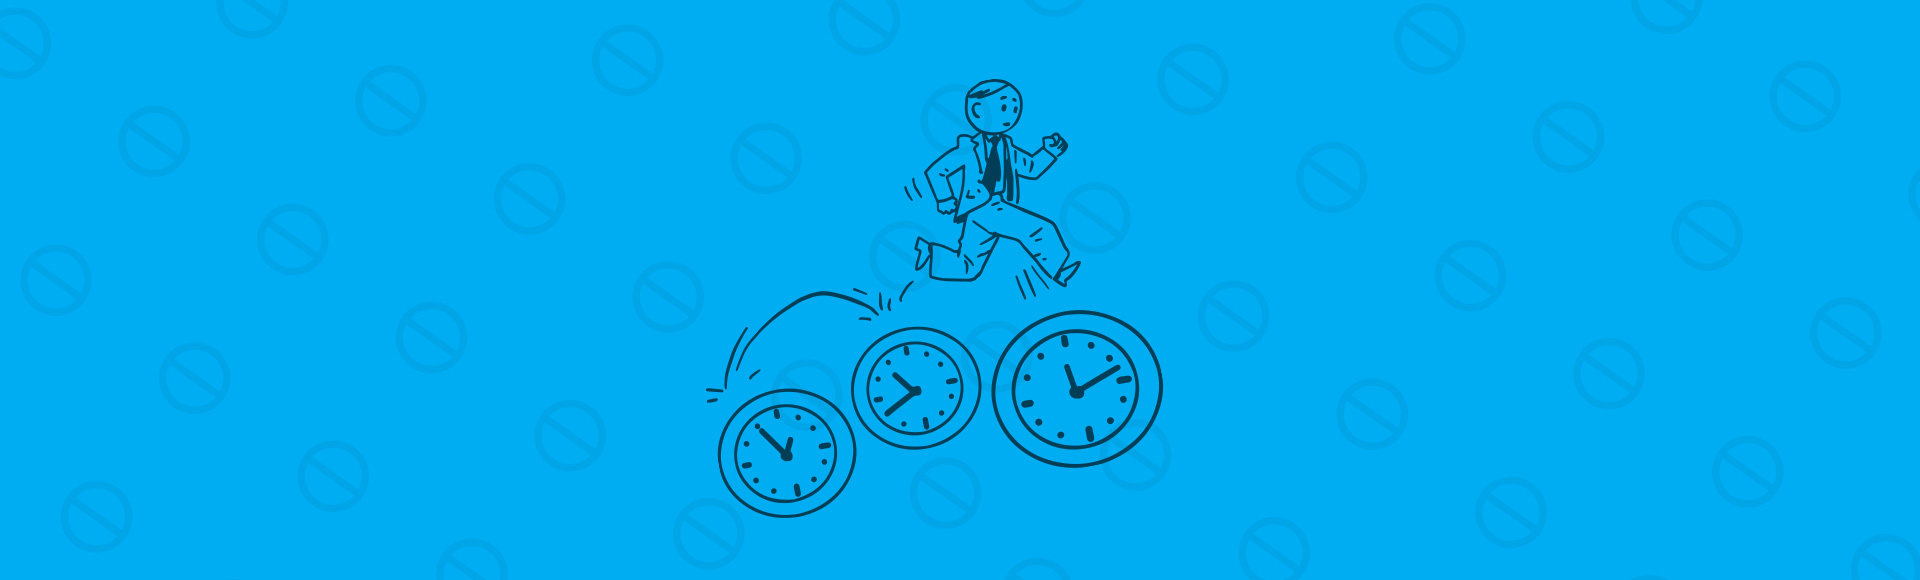 Illustration of employee running on time clocks to represent Fingercheck's new feature restricting employee punches based on schedule.